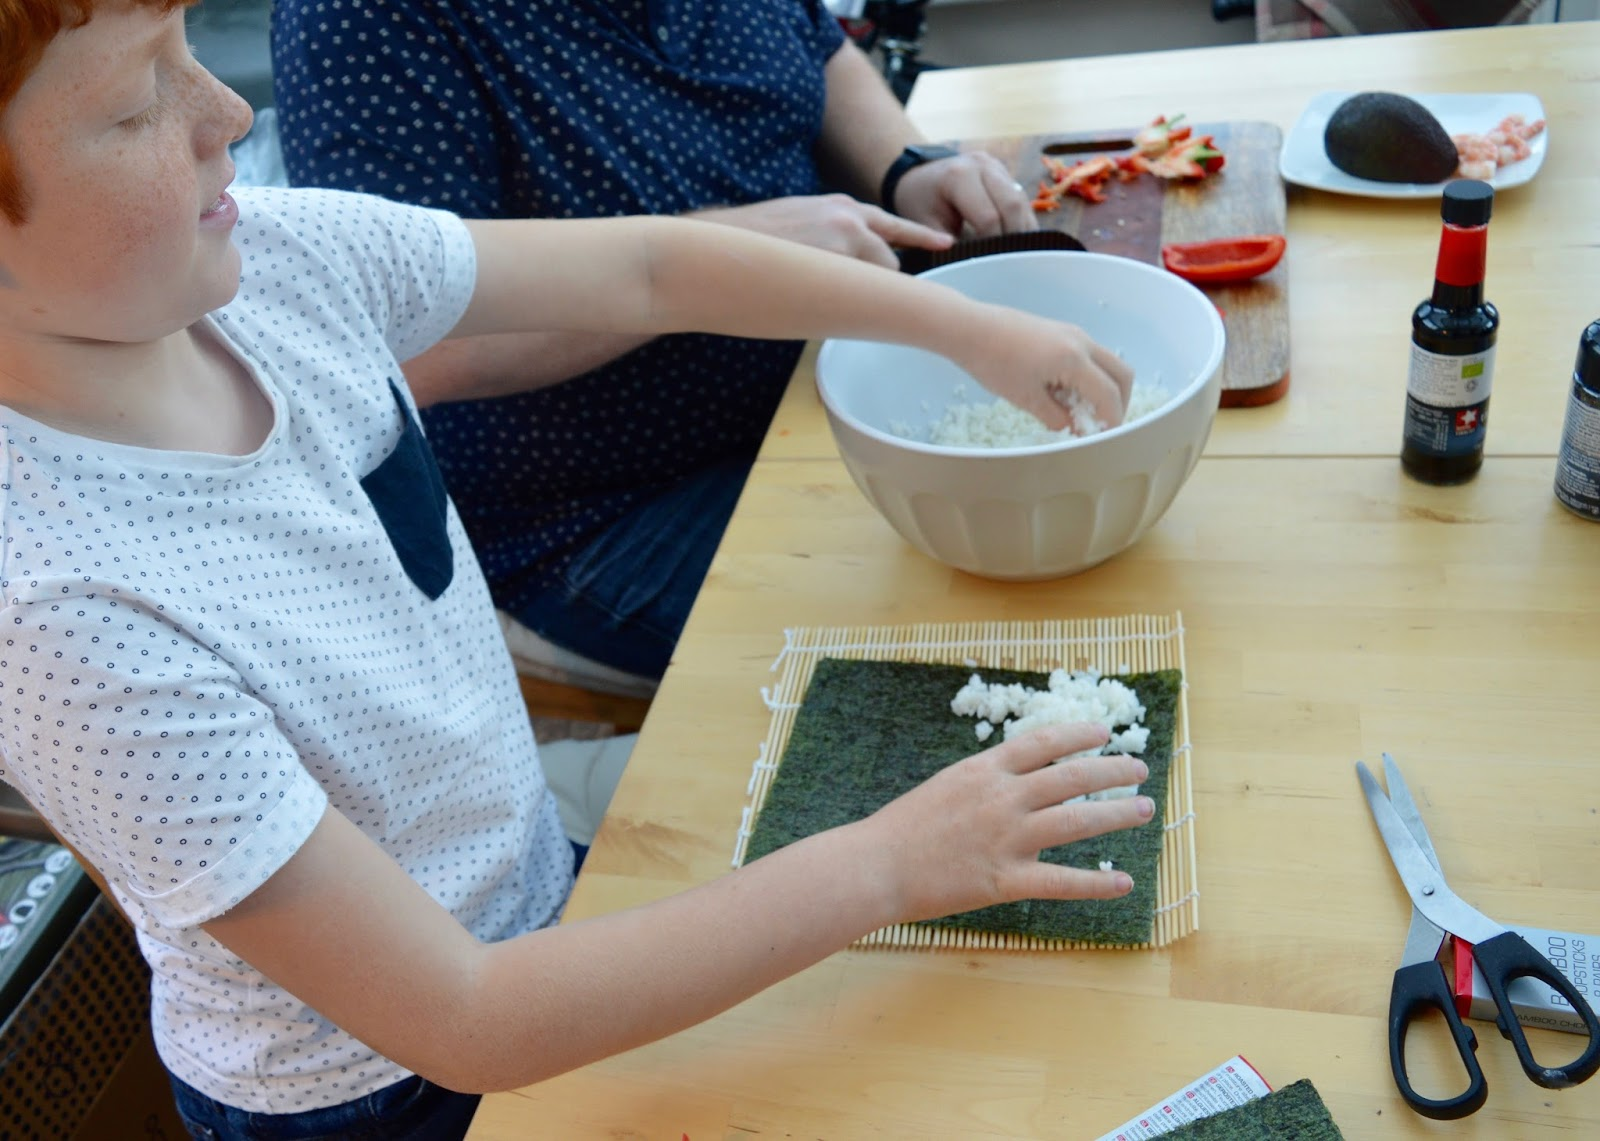 Sushi Making With Kids - A Tutorial for Beginners with Yutaka - using the rolling mat